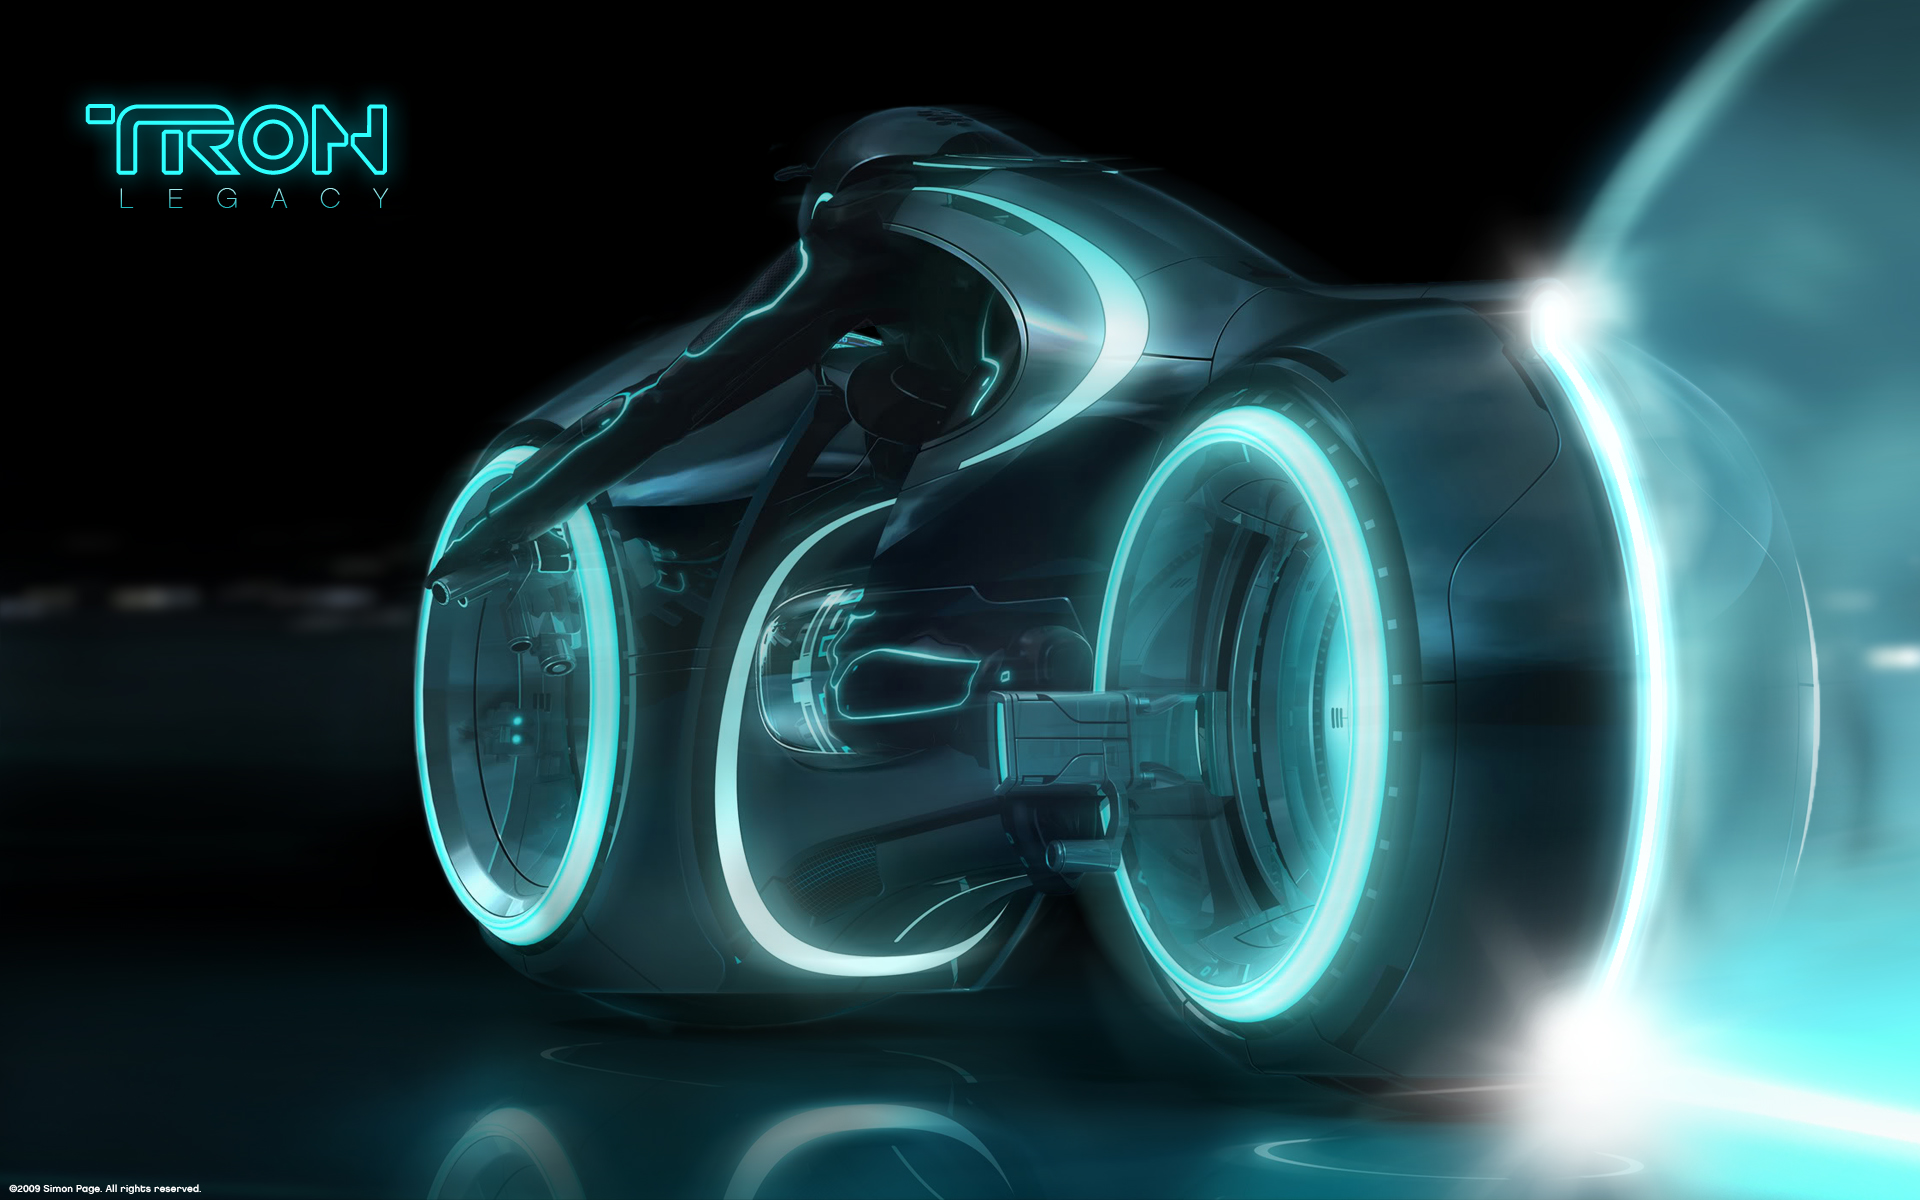 Image Tron Legacy Bike Wallpapers And Stock Photos